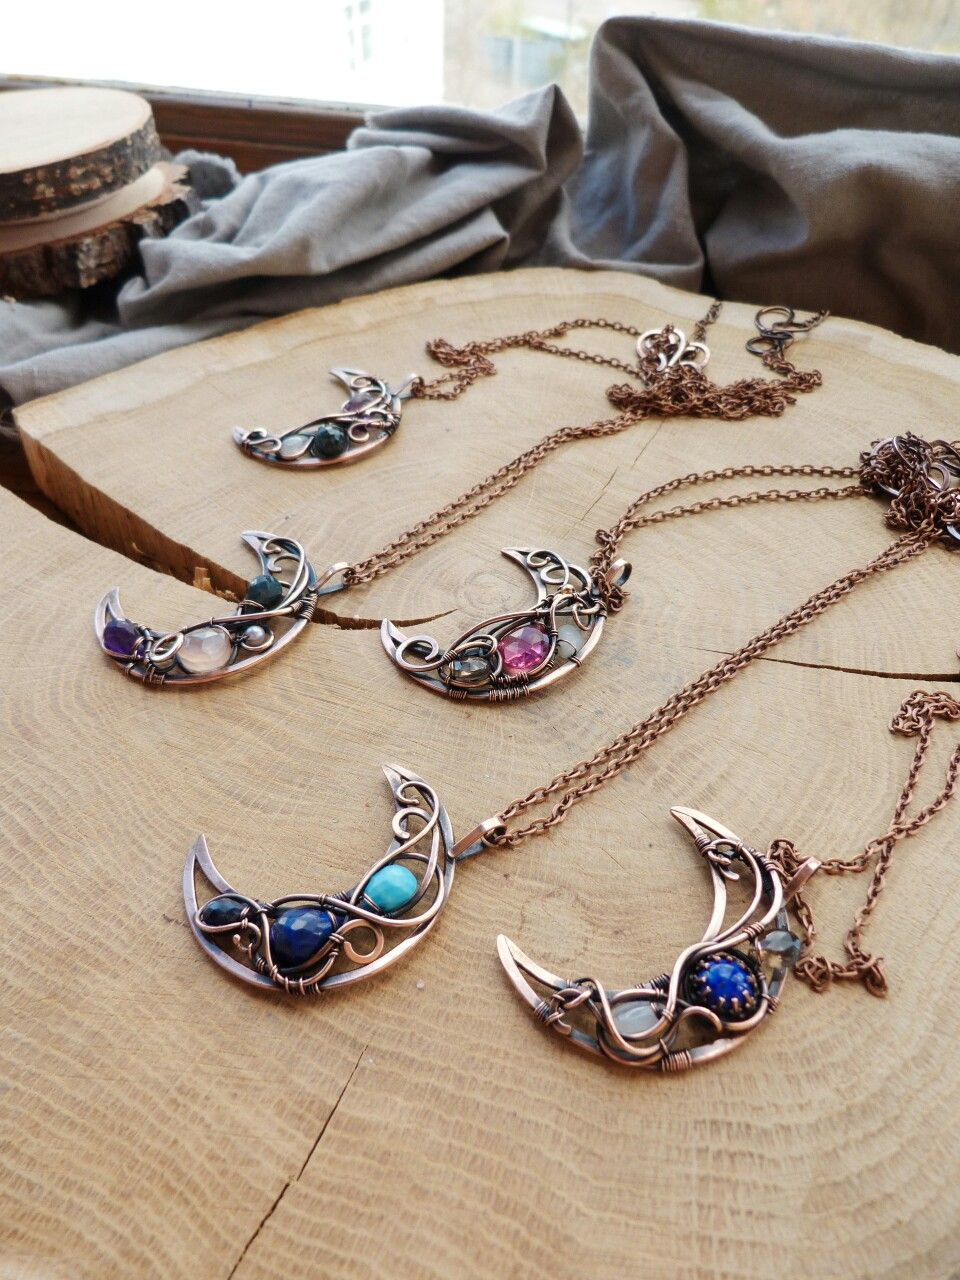 Moon necklaces collection by Ursula Jewelry.